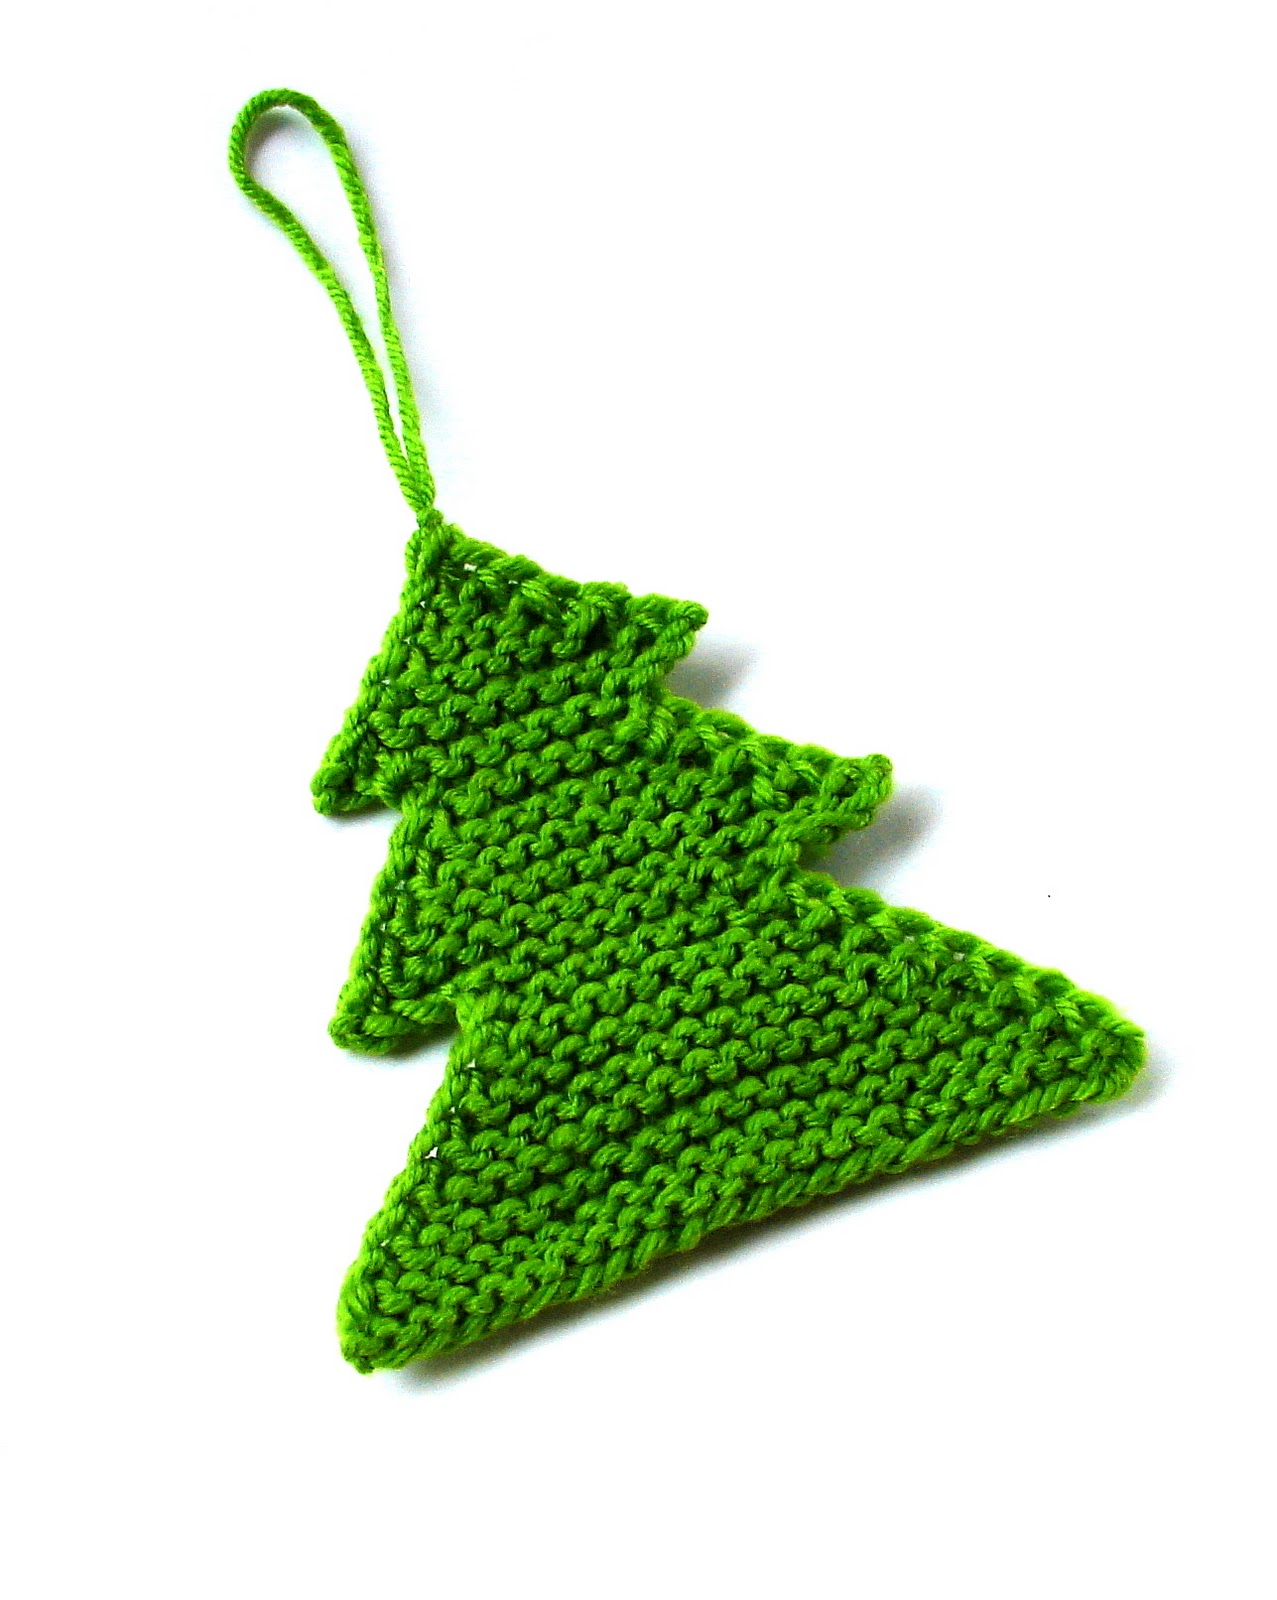 Knitted Xmas Tree Decorations Patterns : Ferbys Corner Knitting: Christmas Is Coming To Town